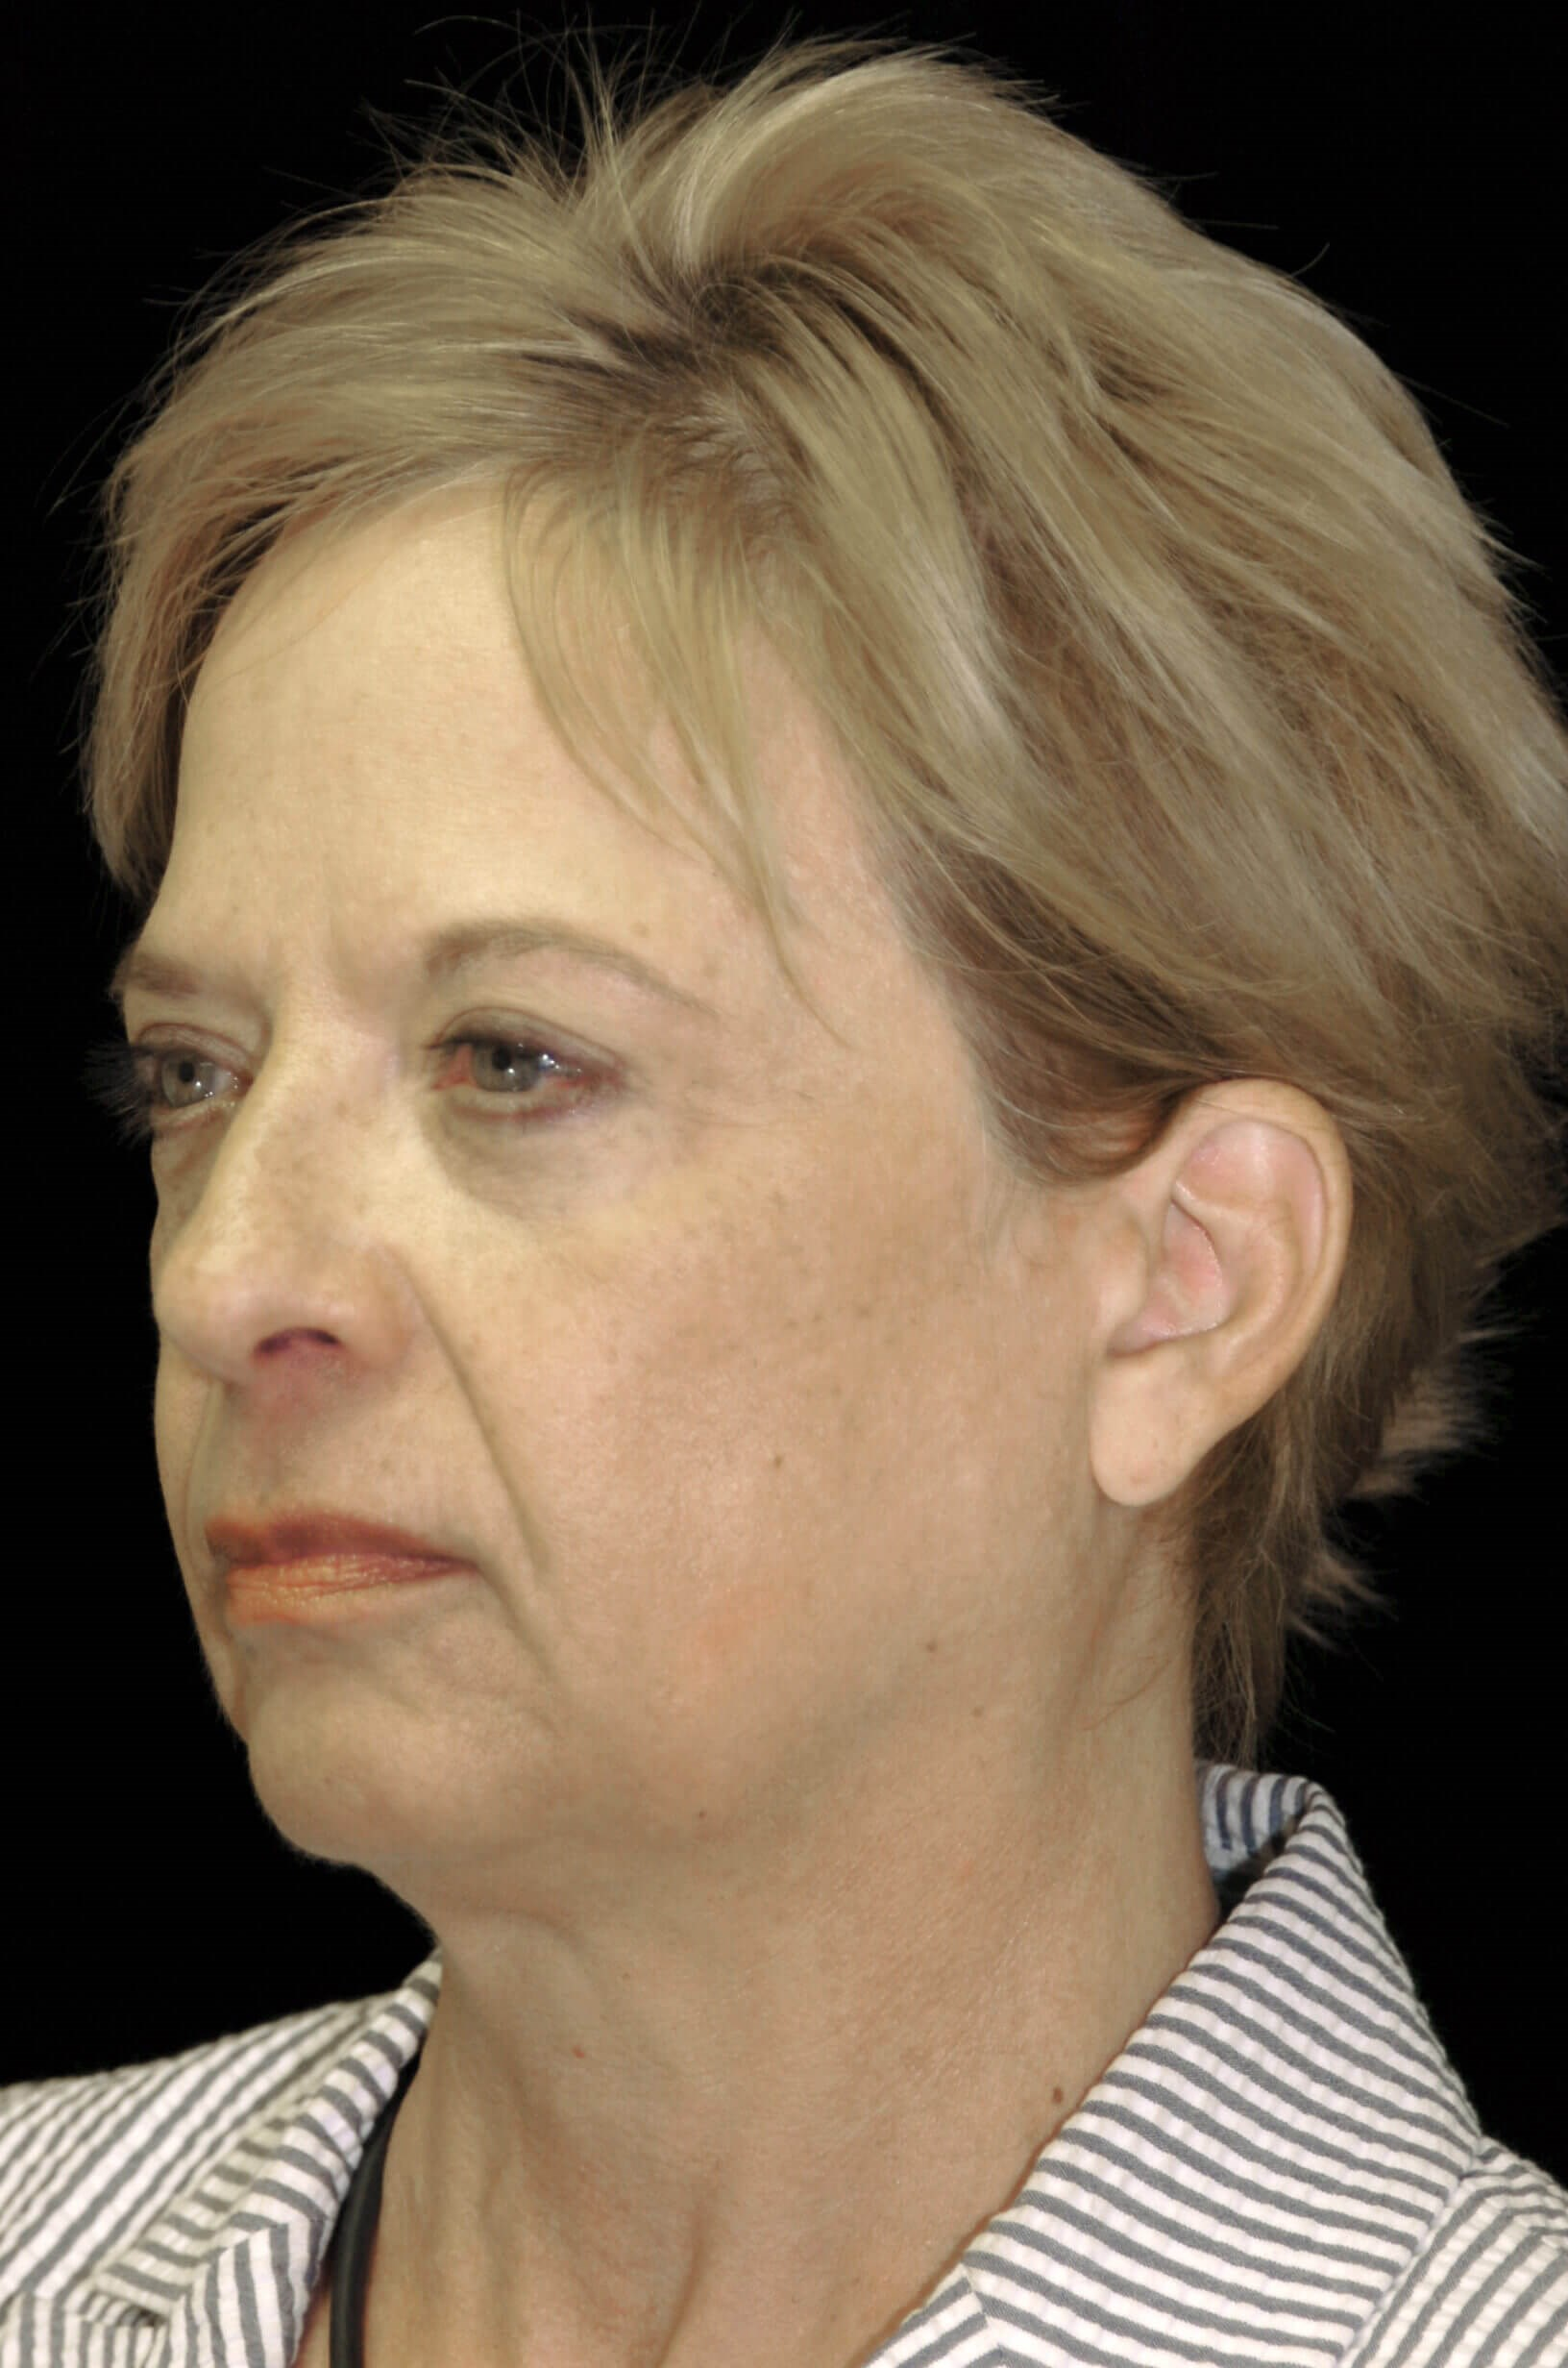 PLANO, TEXAS WOMAN REVITALIZES HER LOOK BY HAVING A FACELIFT